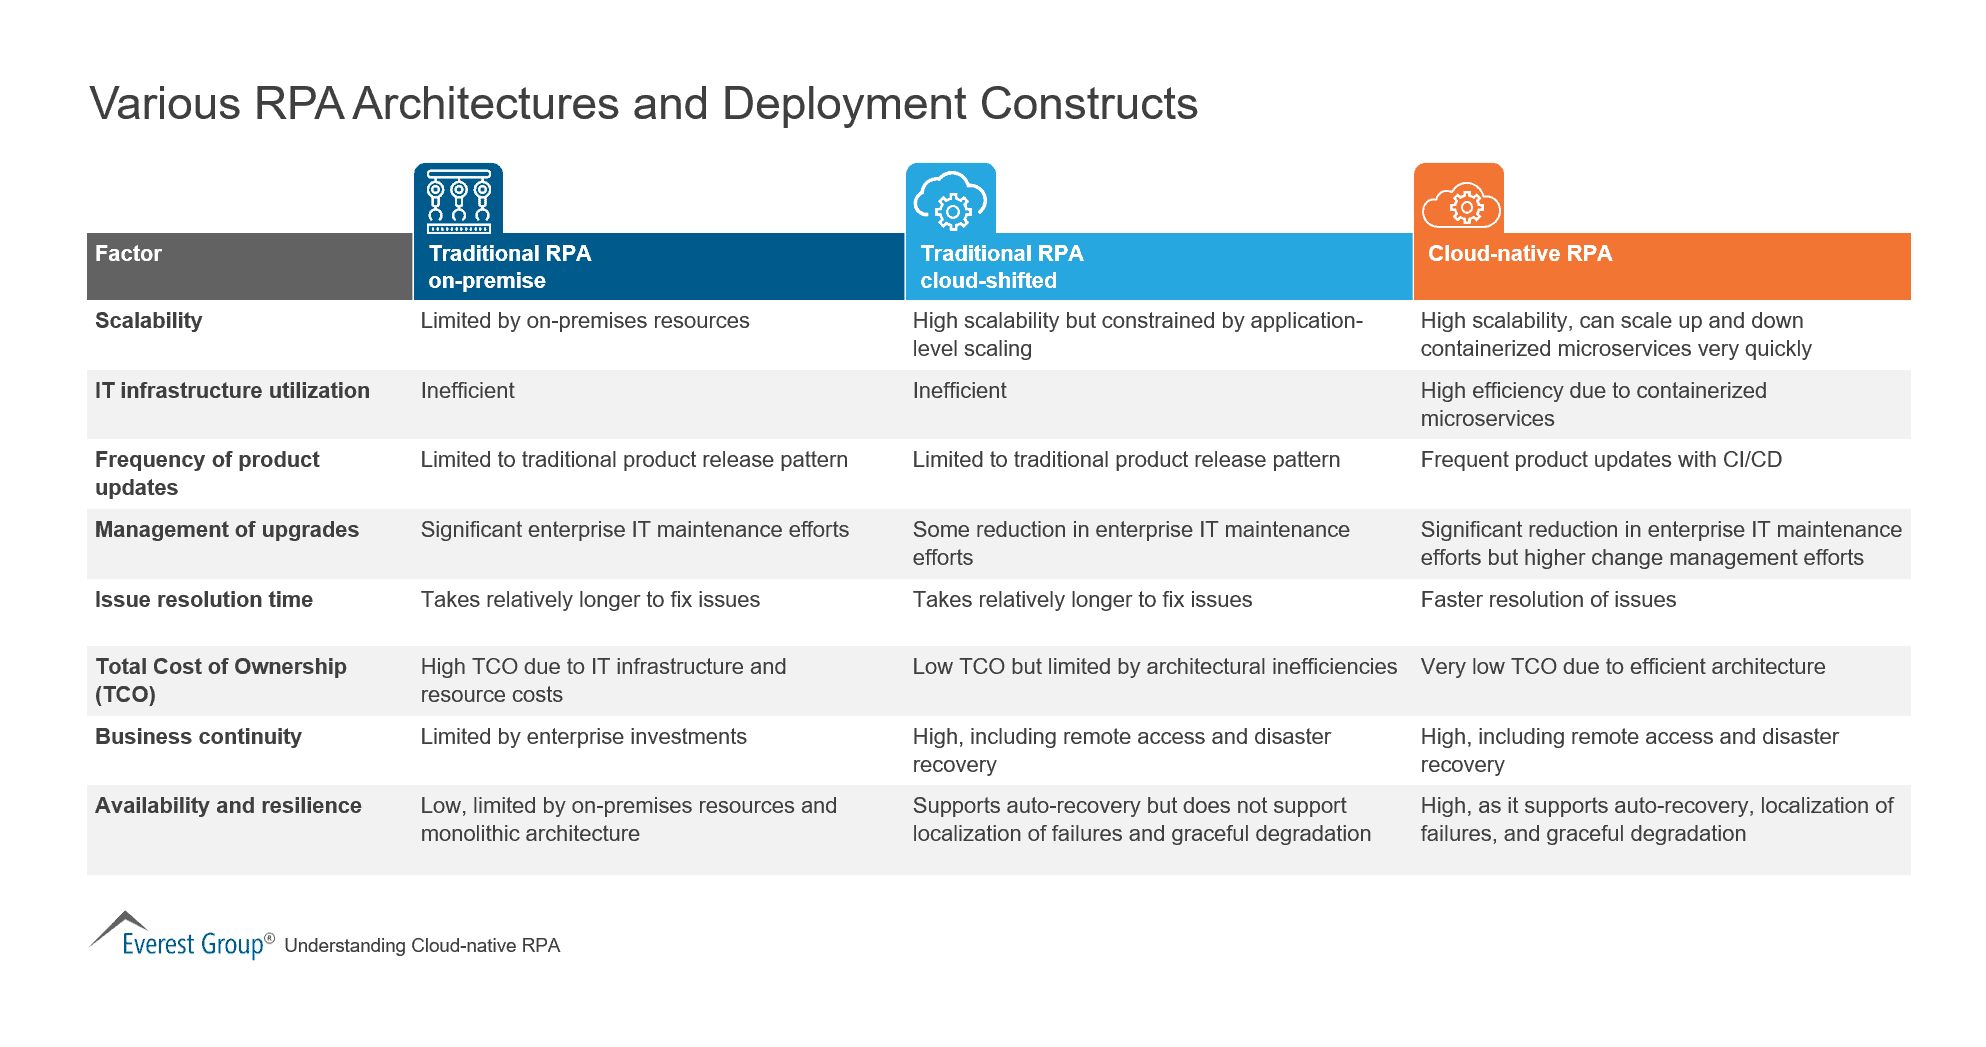 Various RPA Architectures and Deployment Constructs